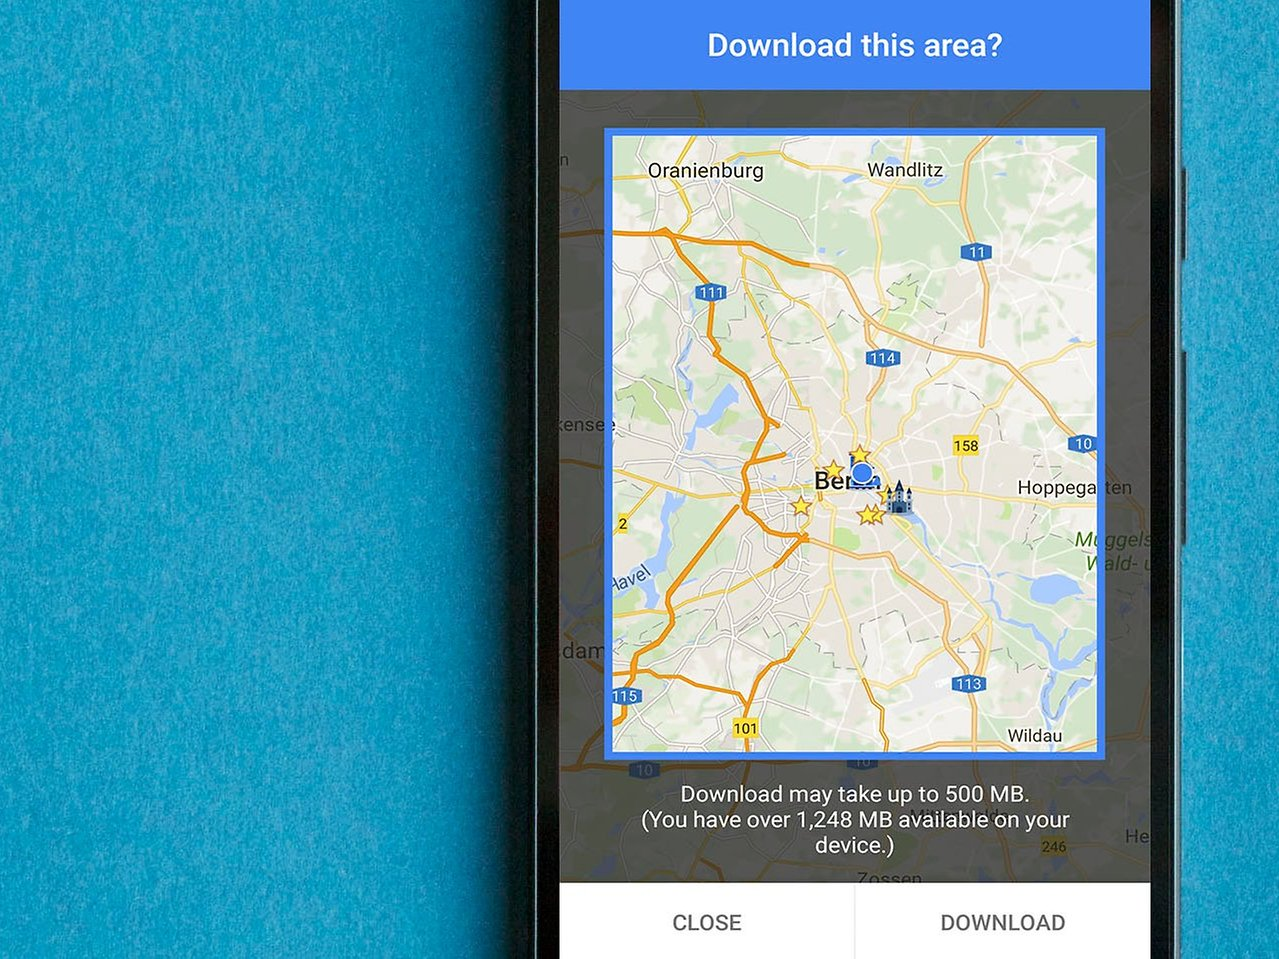 Best offline GPS and Maps apps for Android | AndroidPIT on map for th, map for ma, map for wv, map for ri, map for illinois, map for az, map for au, map for la, map for ny, map for nv, map for canada, map for tx, map for future, map for sudan, map for pa, map for ga, map for co, map for nc, map for mo,